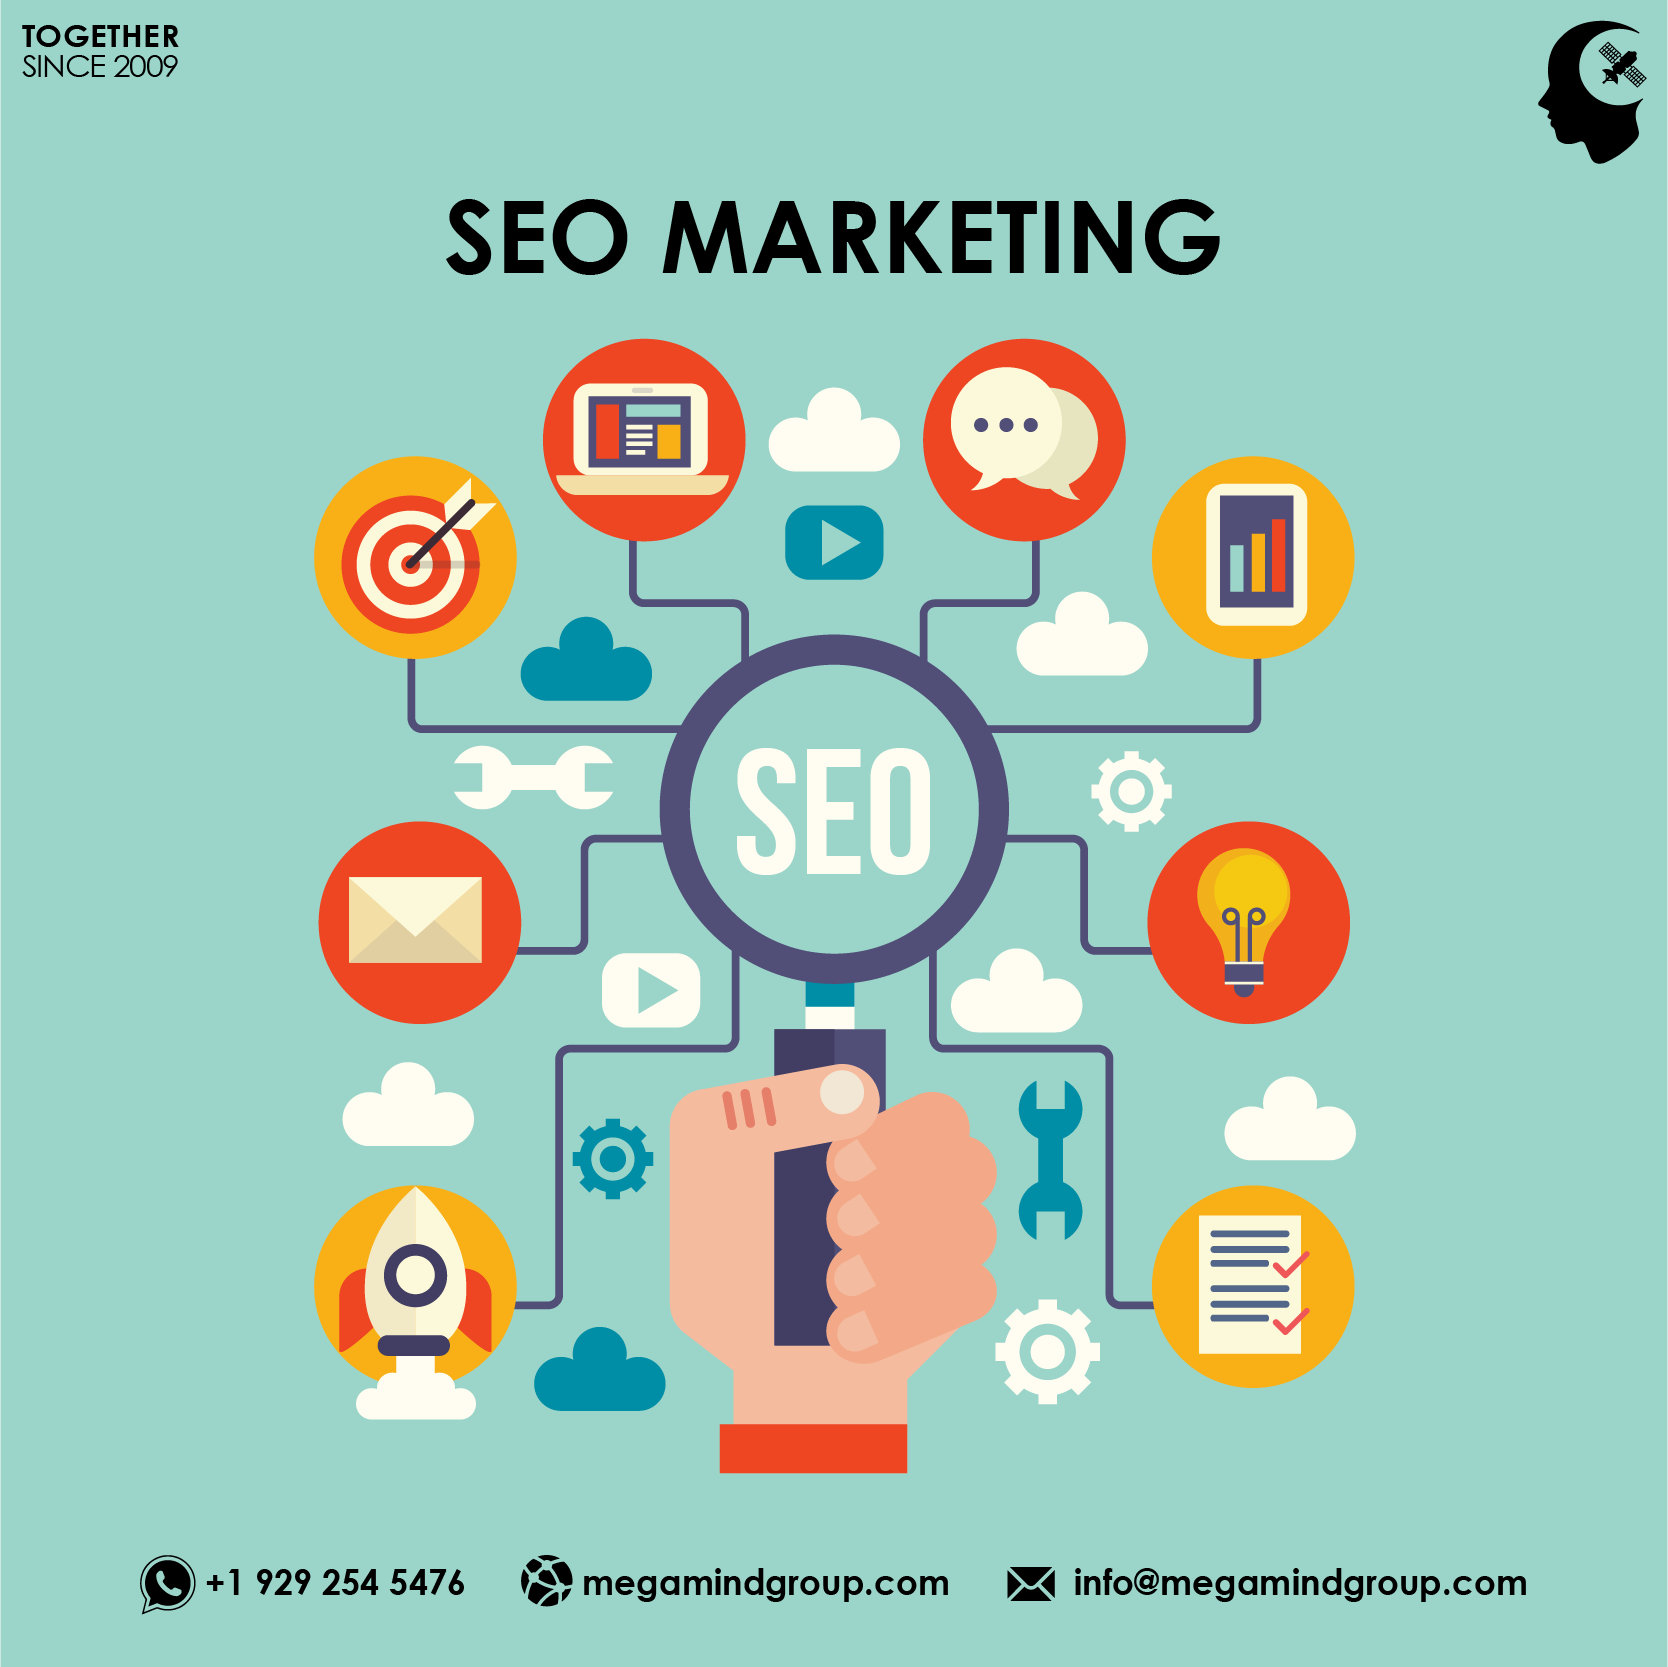 SEO Marketing is imperative for brand credibility. Brings